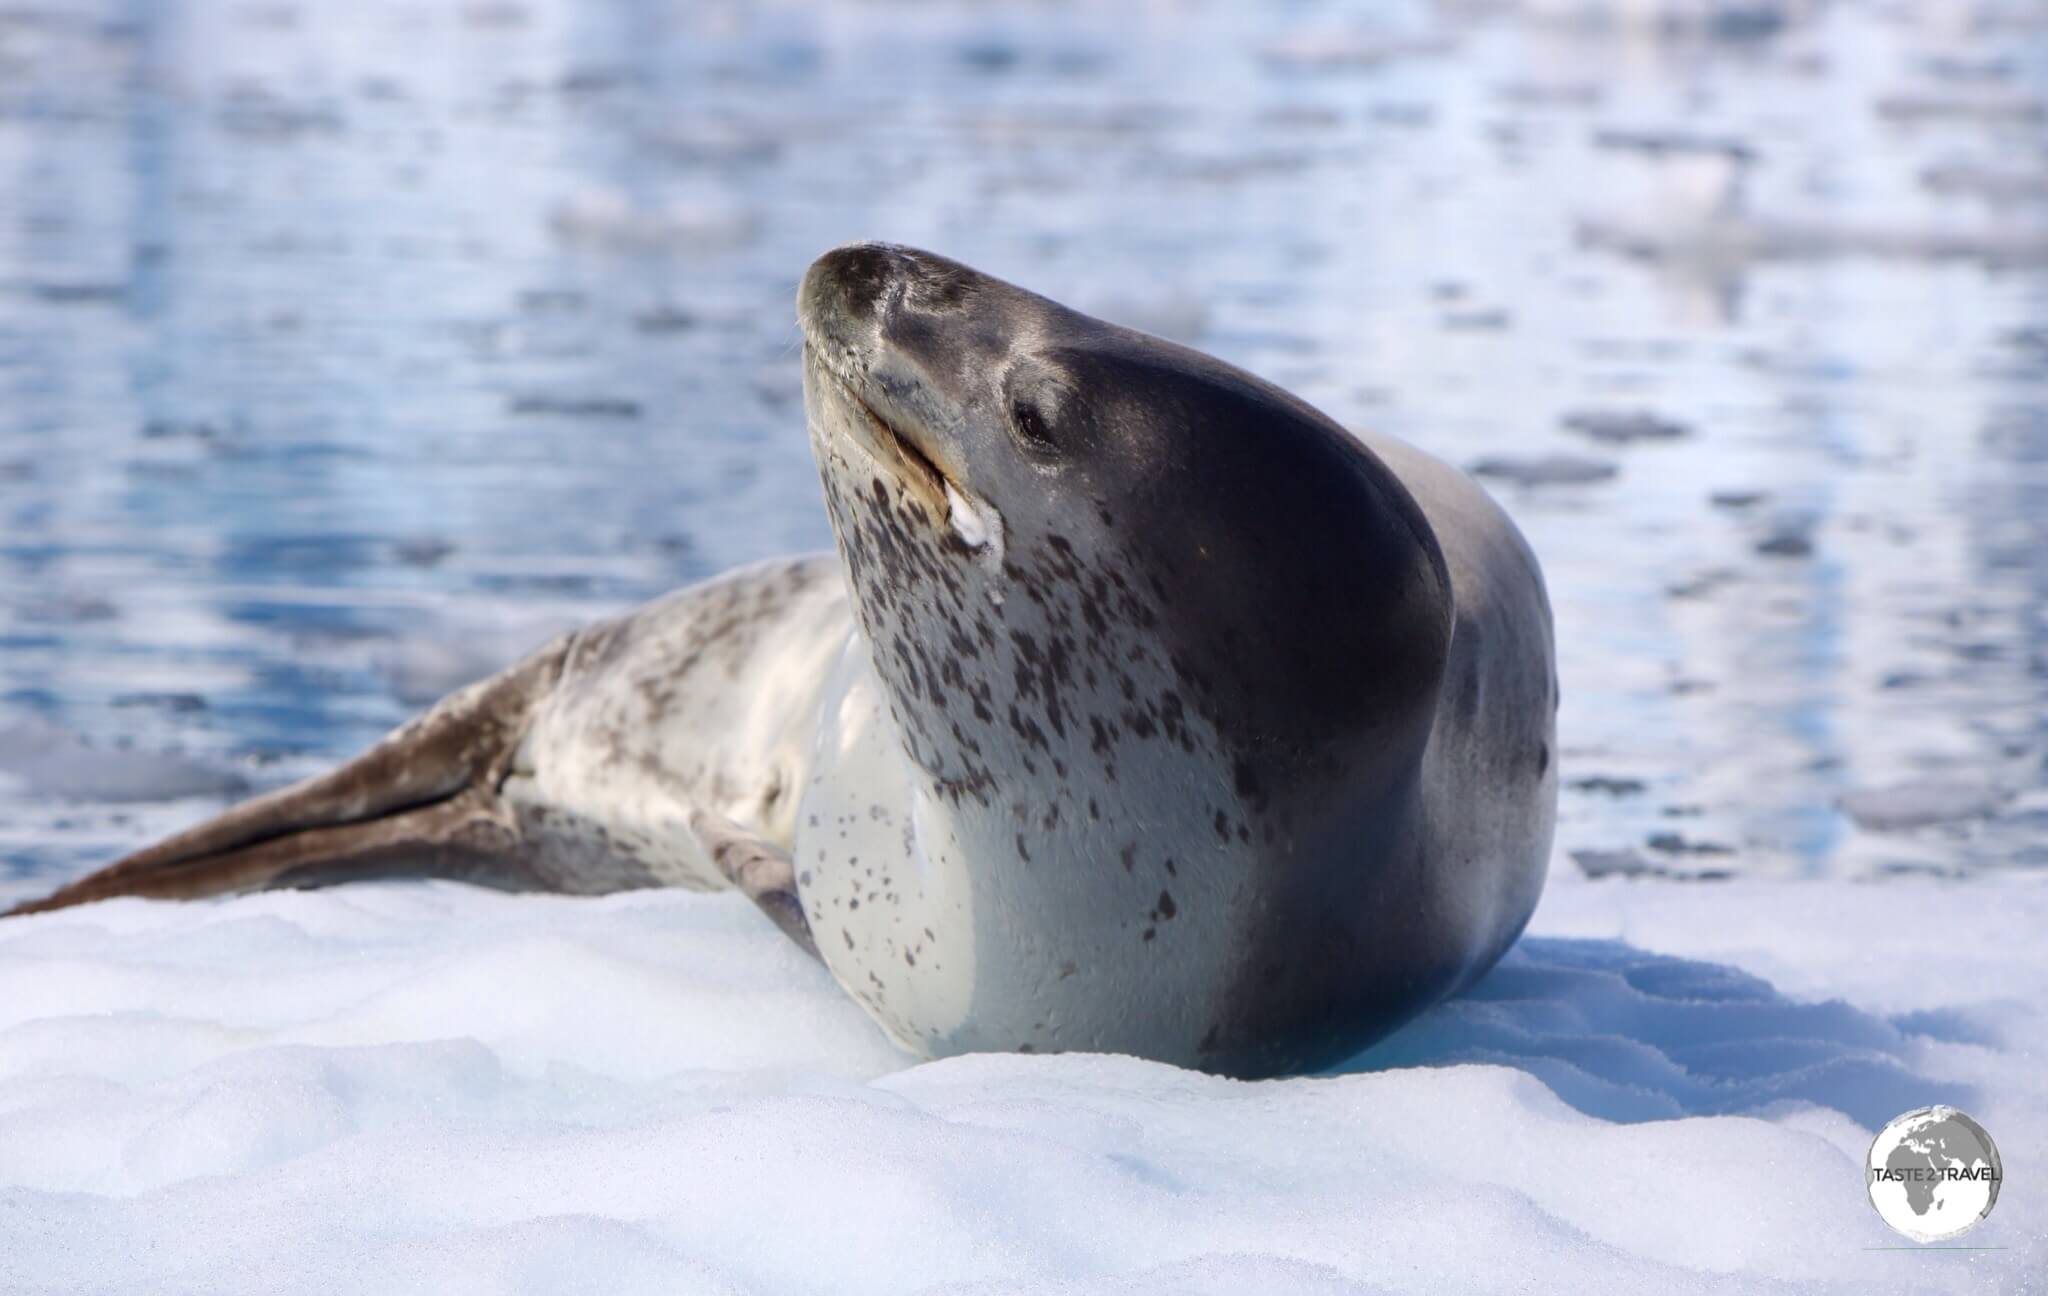 The Leopard seal is easily identified by its reptilian-like head.